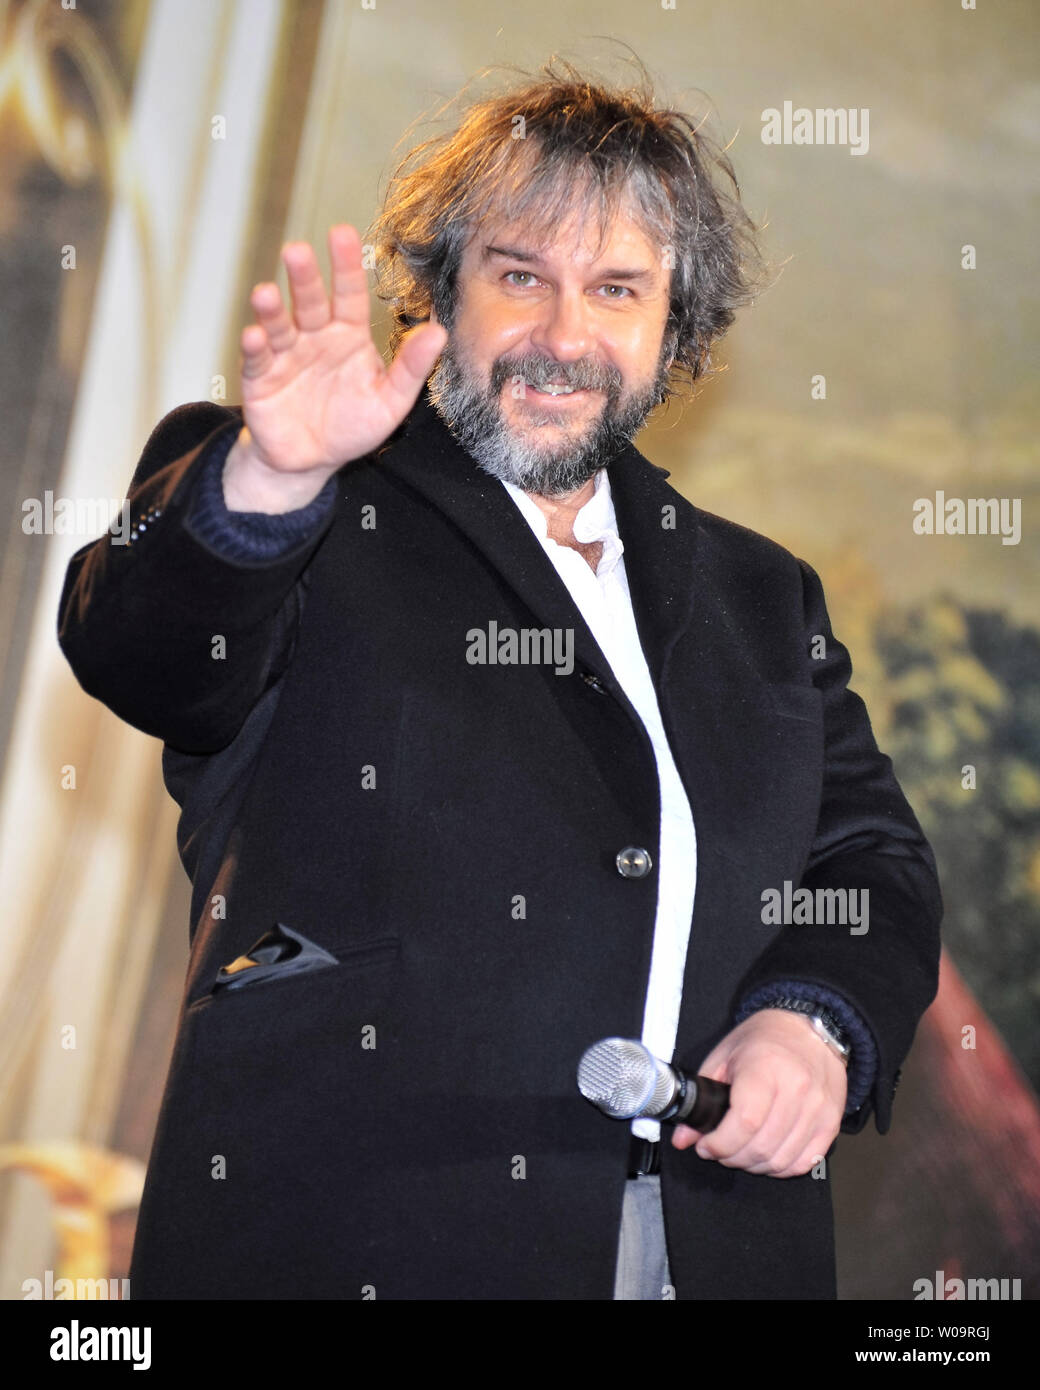 """Director Peter Jackson attends the Japan premiere for the film """"The Hobbit: An Unexpected Journey"""" in Tokyo, Japan, on December 1, 2012. The film will open on December 14 in Japan.     UPI/Keizo Mori Stock Photo"""